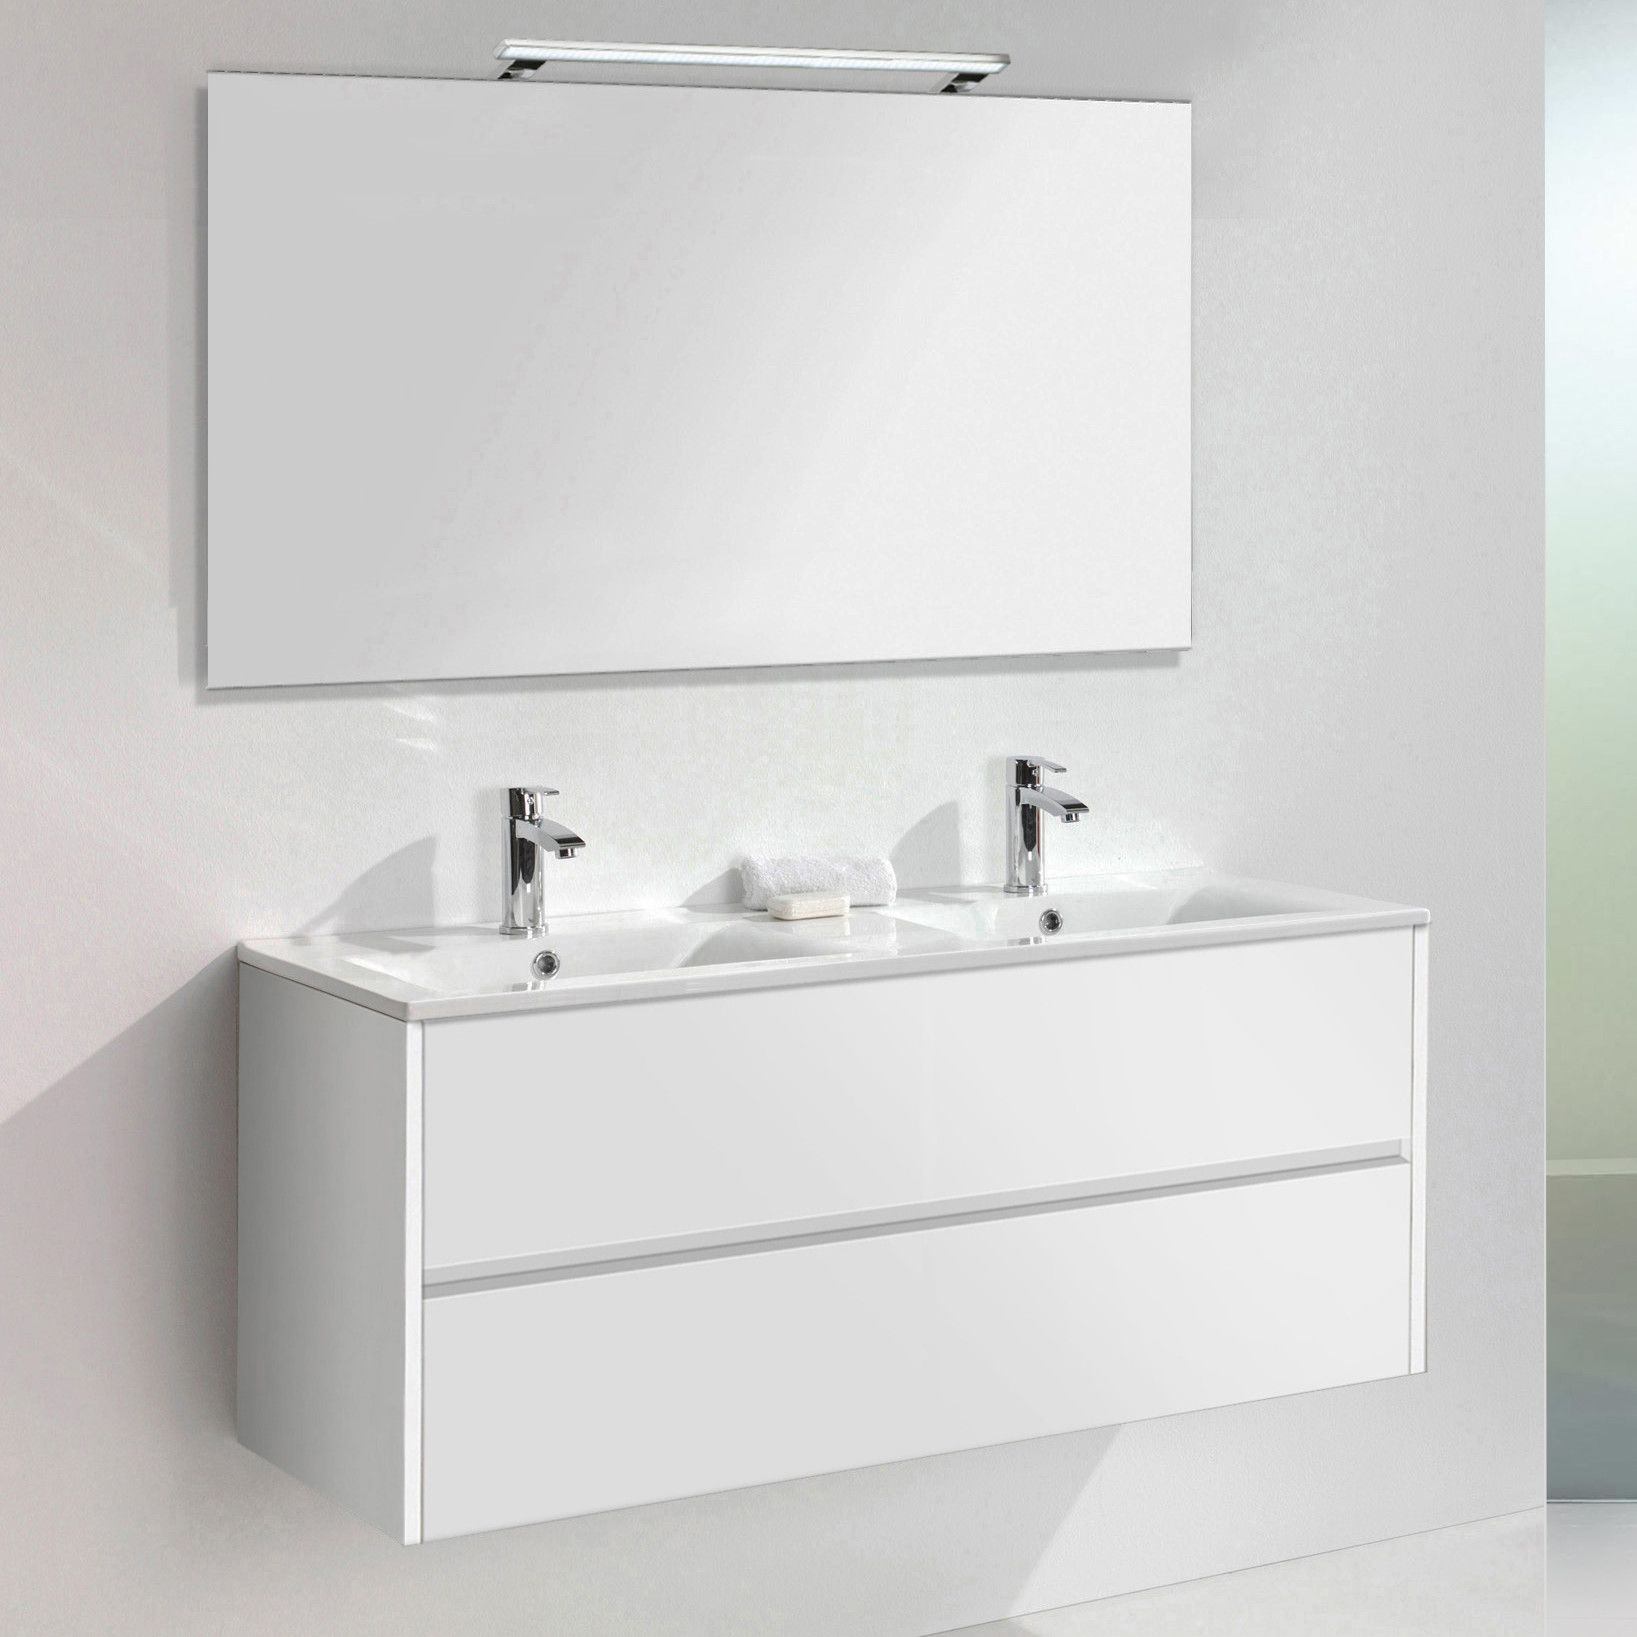 Peachy Daugava 3 Piece Bathroom Furniture Set With Led Mirror In Complete Home Design Collection Papxelindsey Bellcom